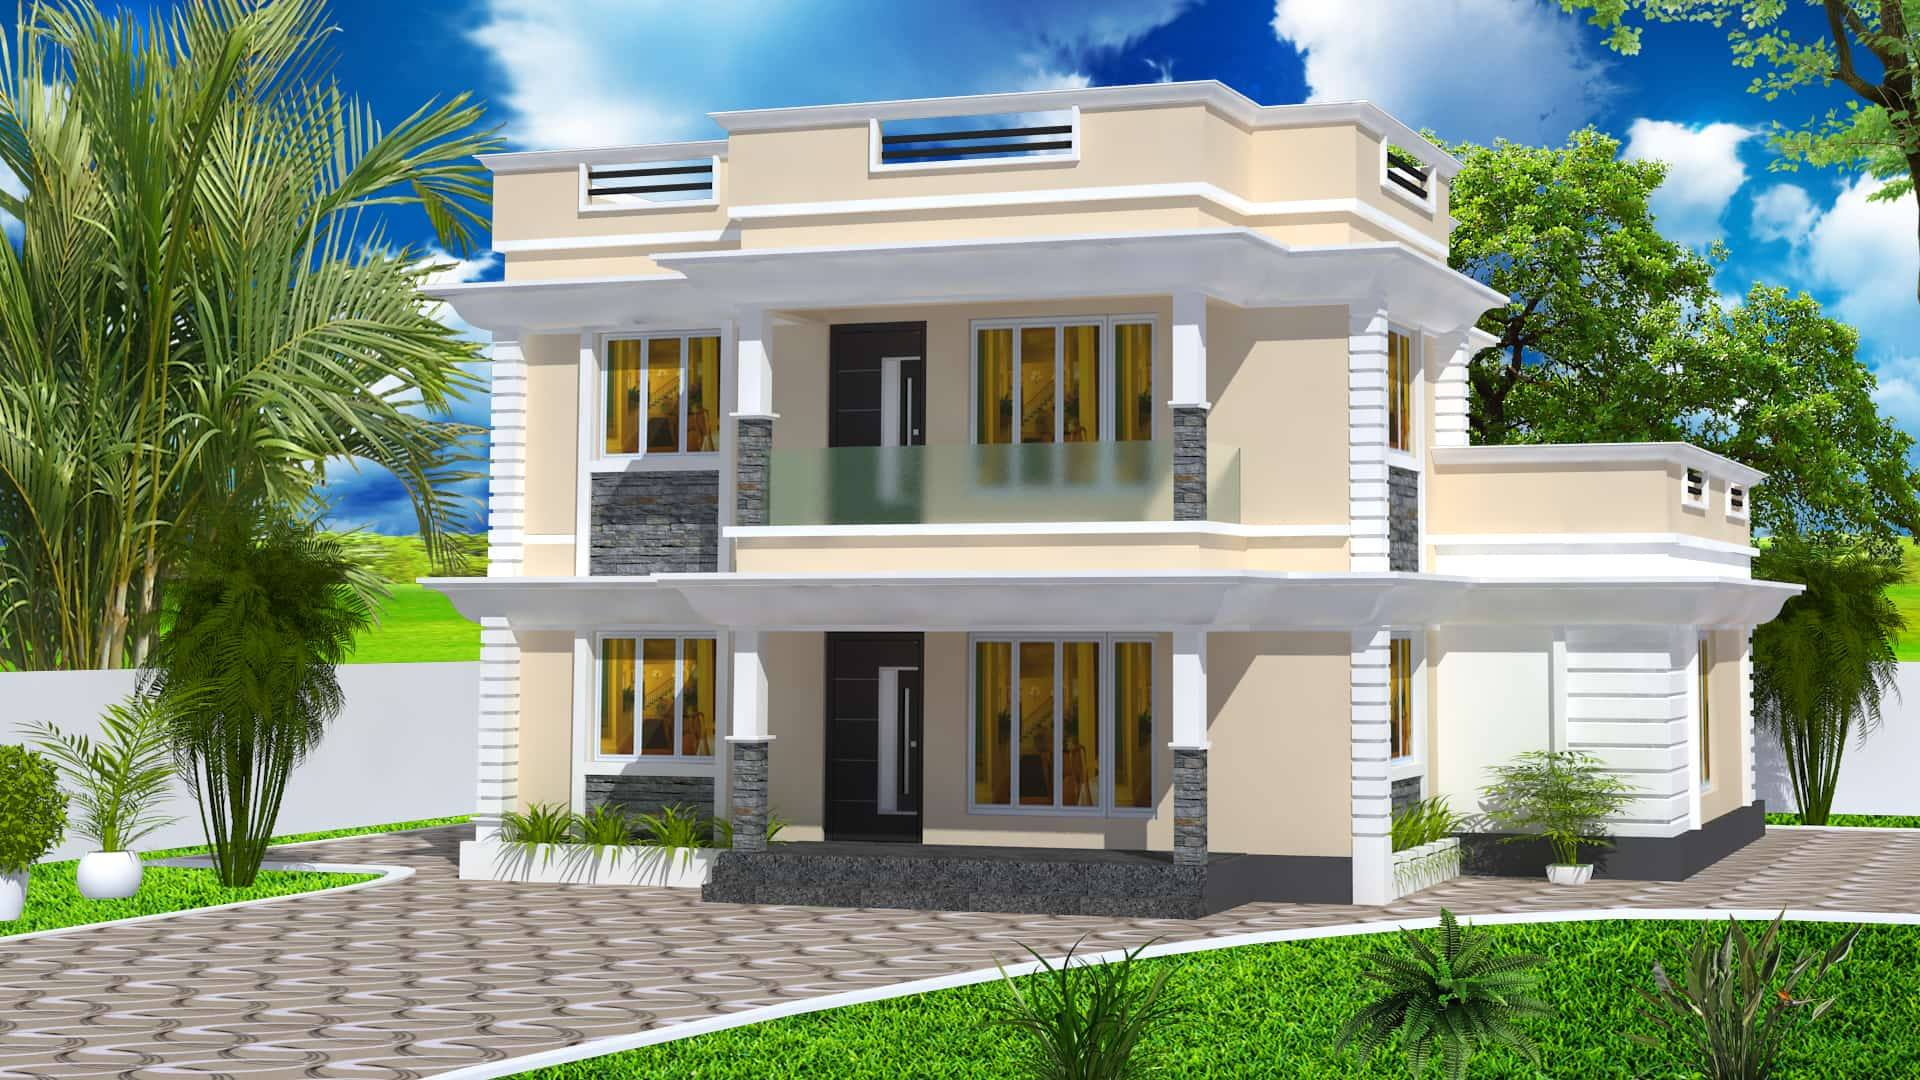 2000 square feet 4 bedroom double floor modern home design for 2000 sq ft contemporary house plans